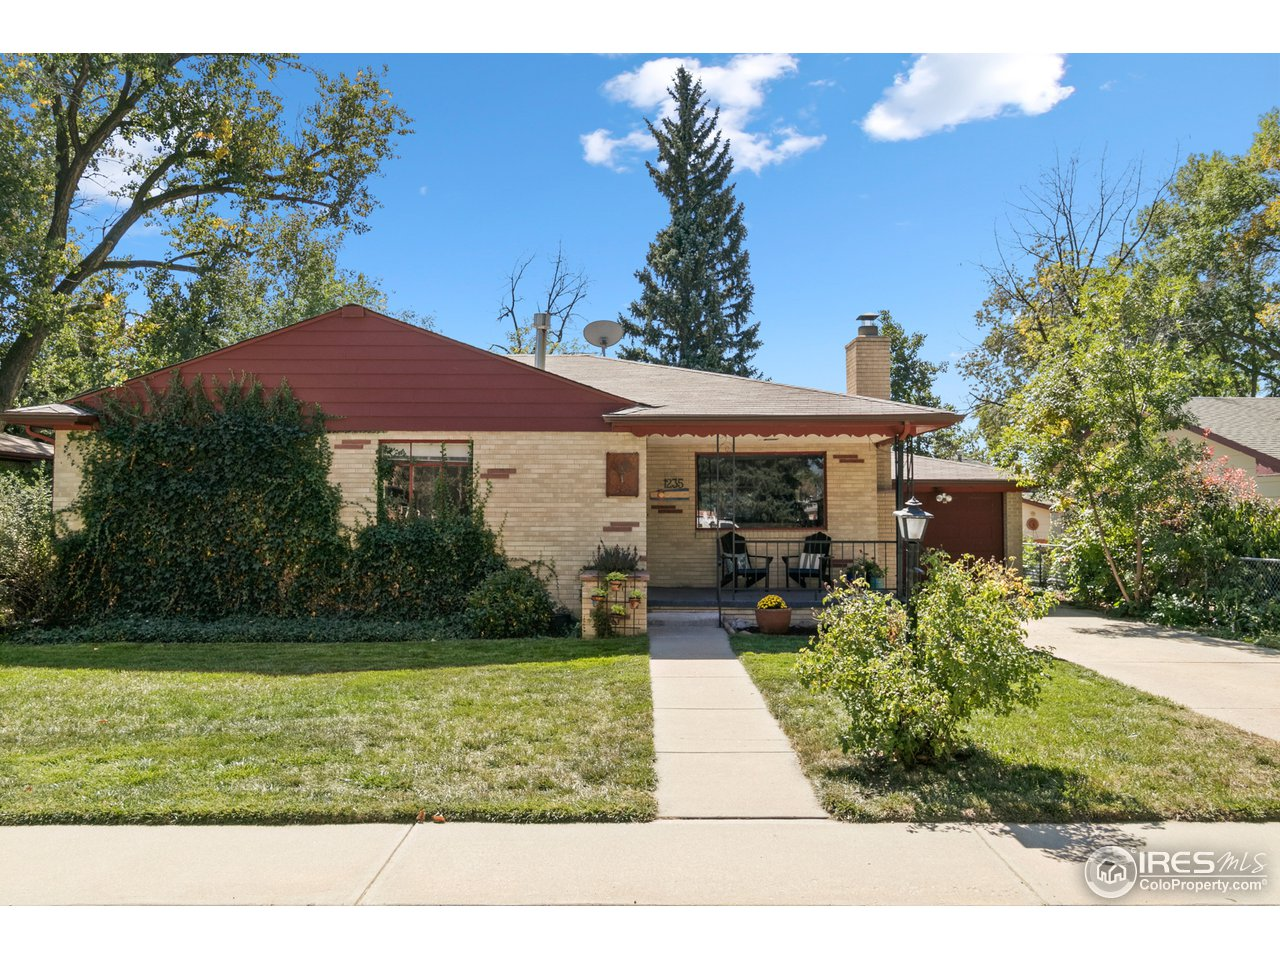 1235 15th Ave, Longmont CO 80501